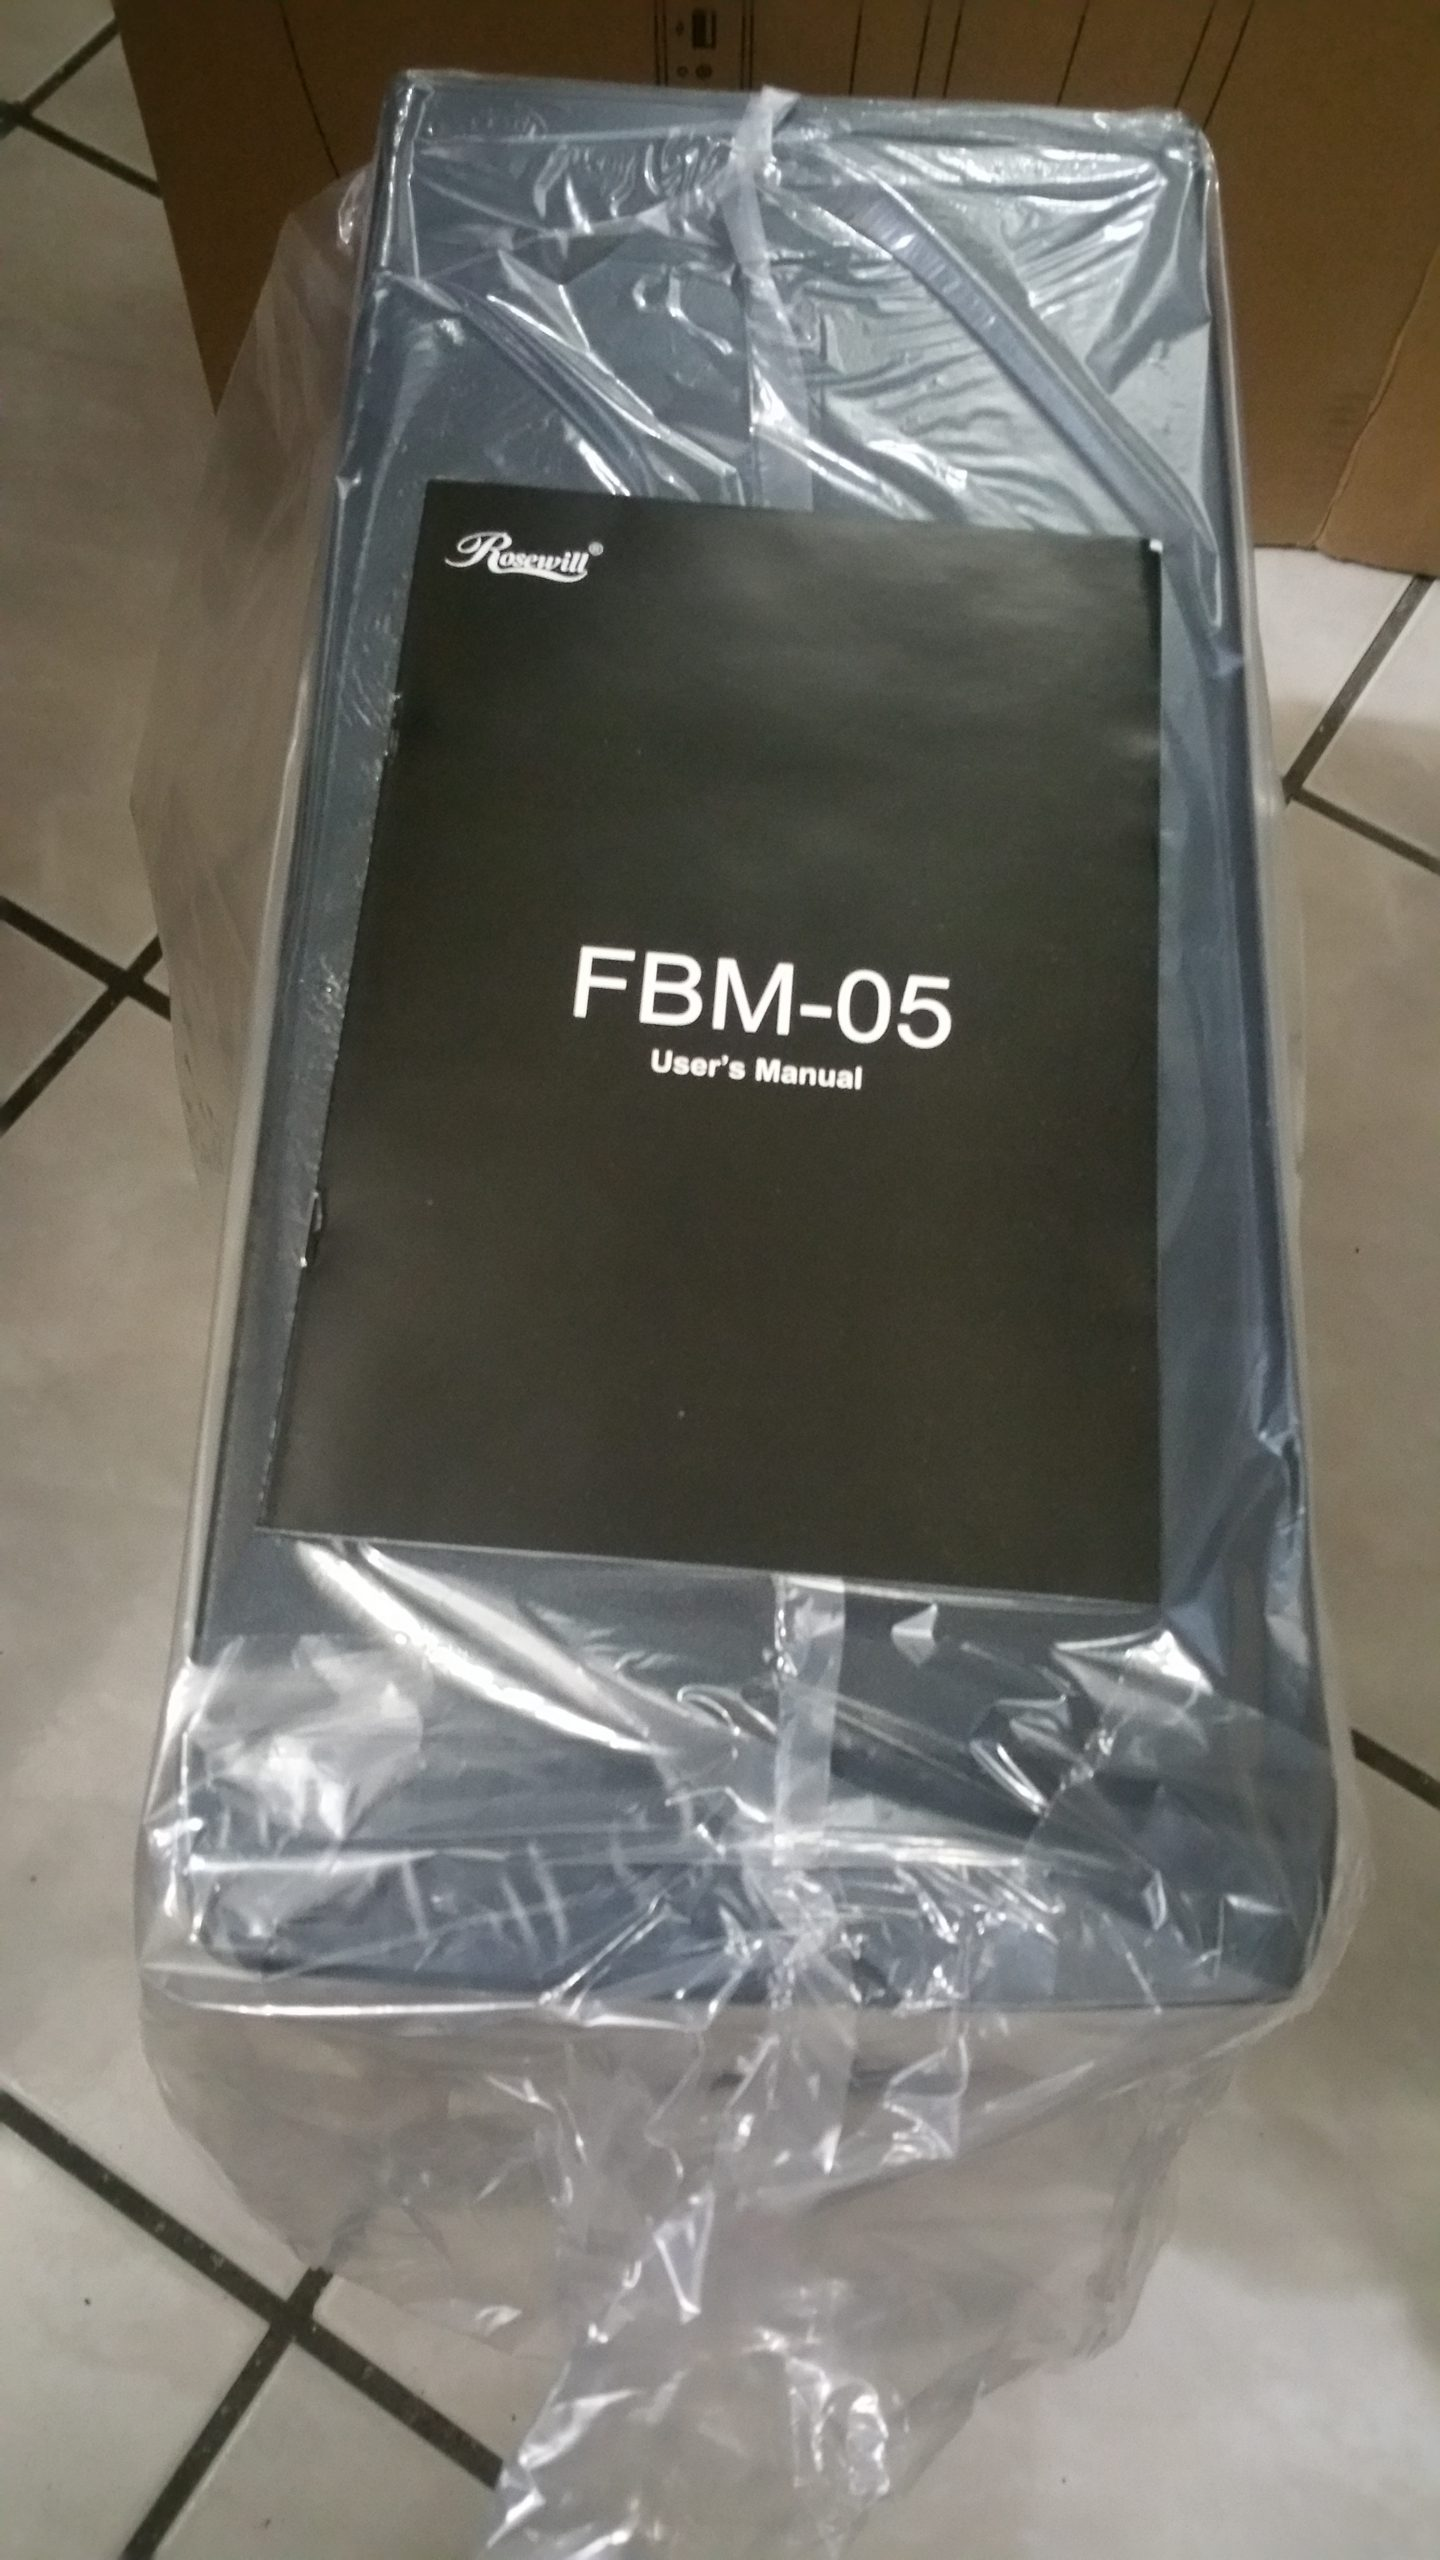 Manual of the Rosewill FBM-05 Case